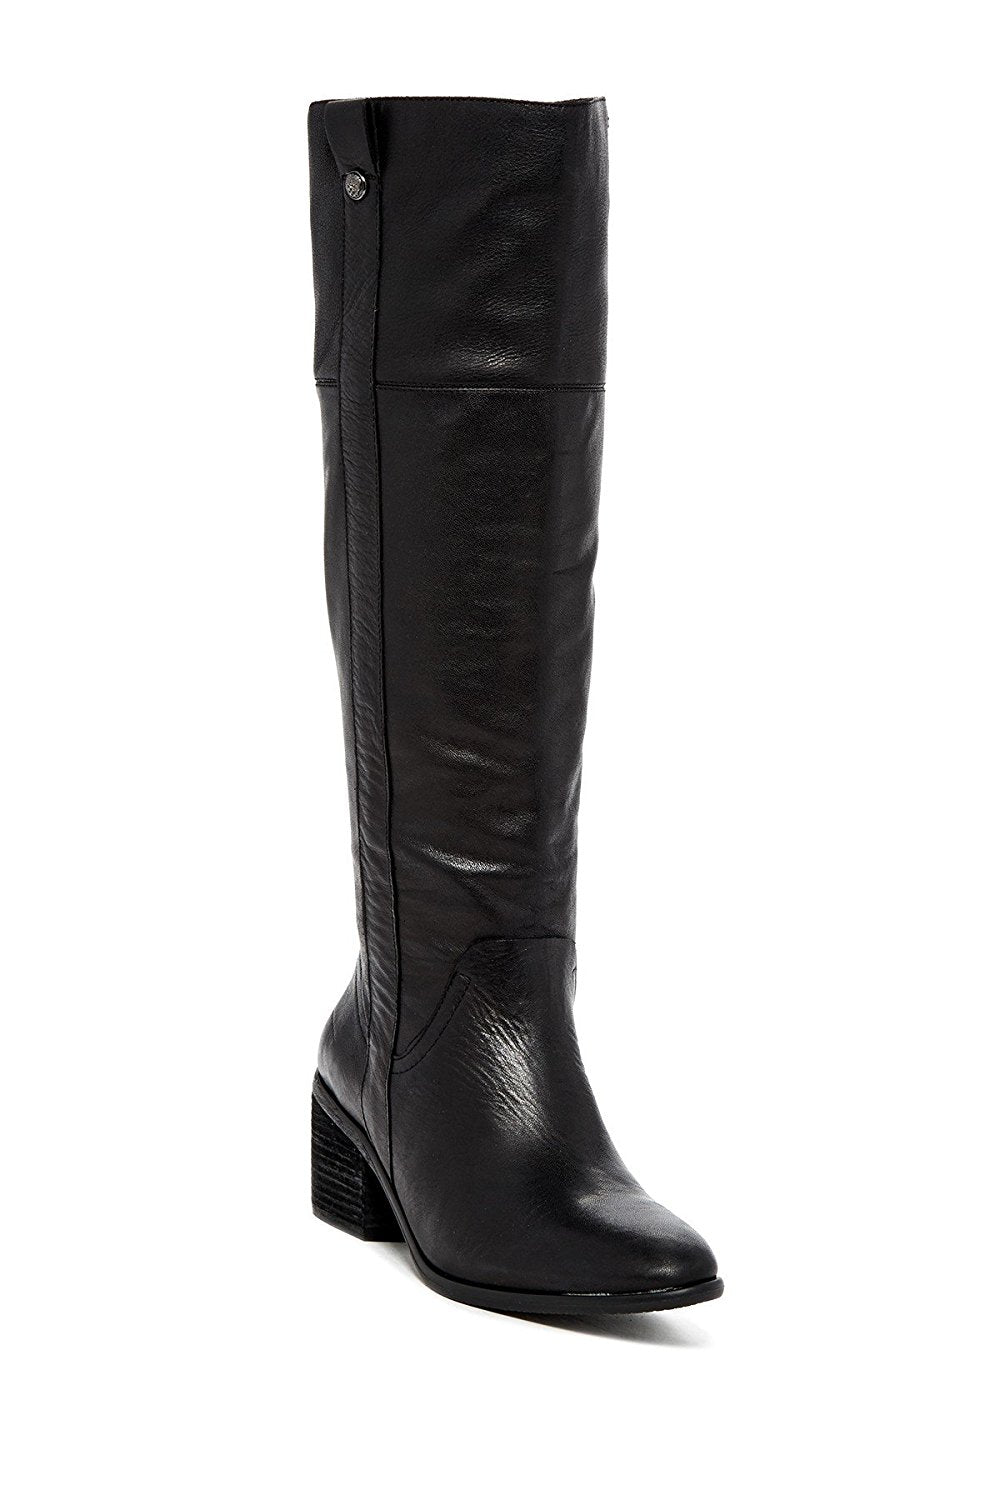 Vince Camuto Women's Mordona Knee-High Leather Boot